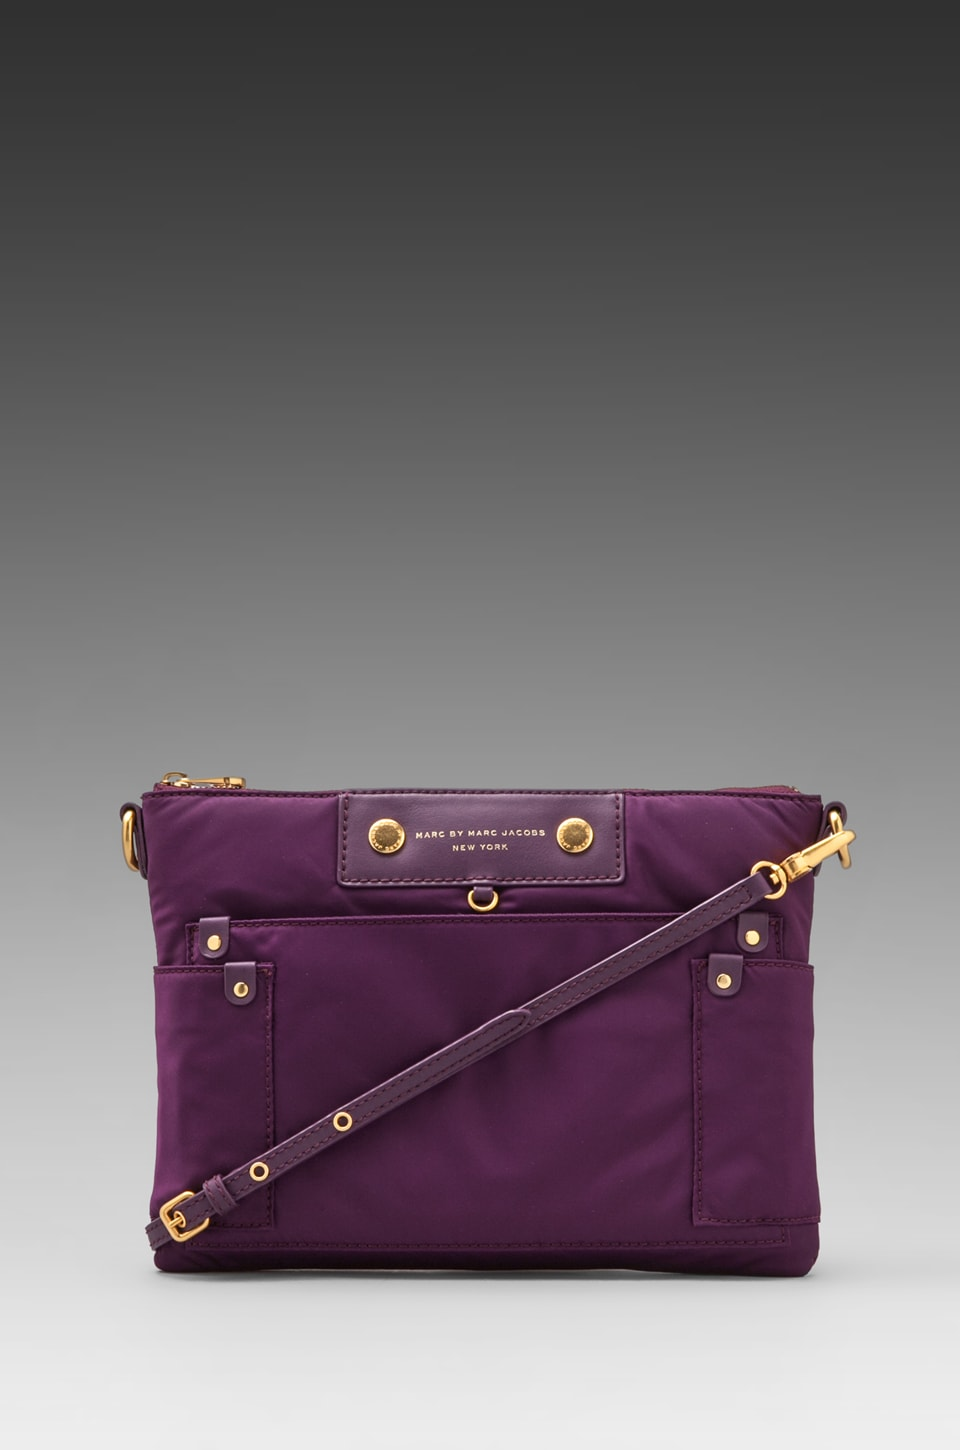 Marc by Marc Jacobs Preppy Nylon Tablet Computer Case in Pansy Purple